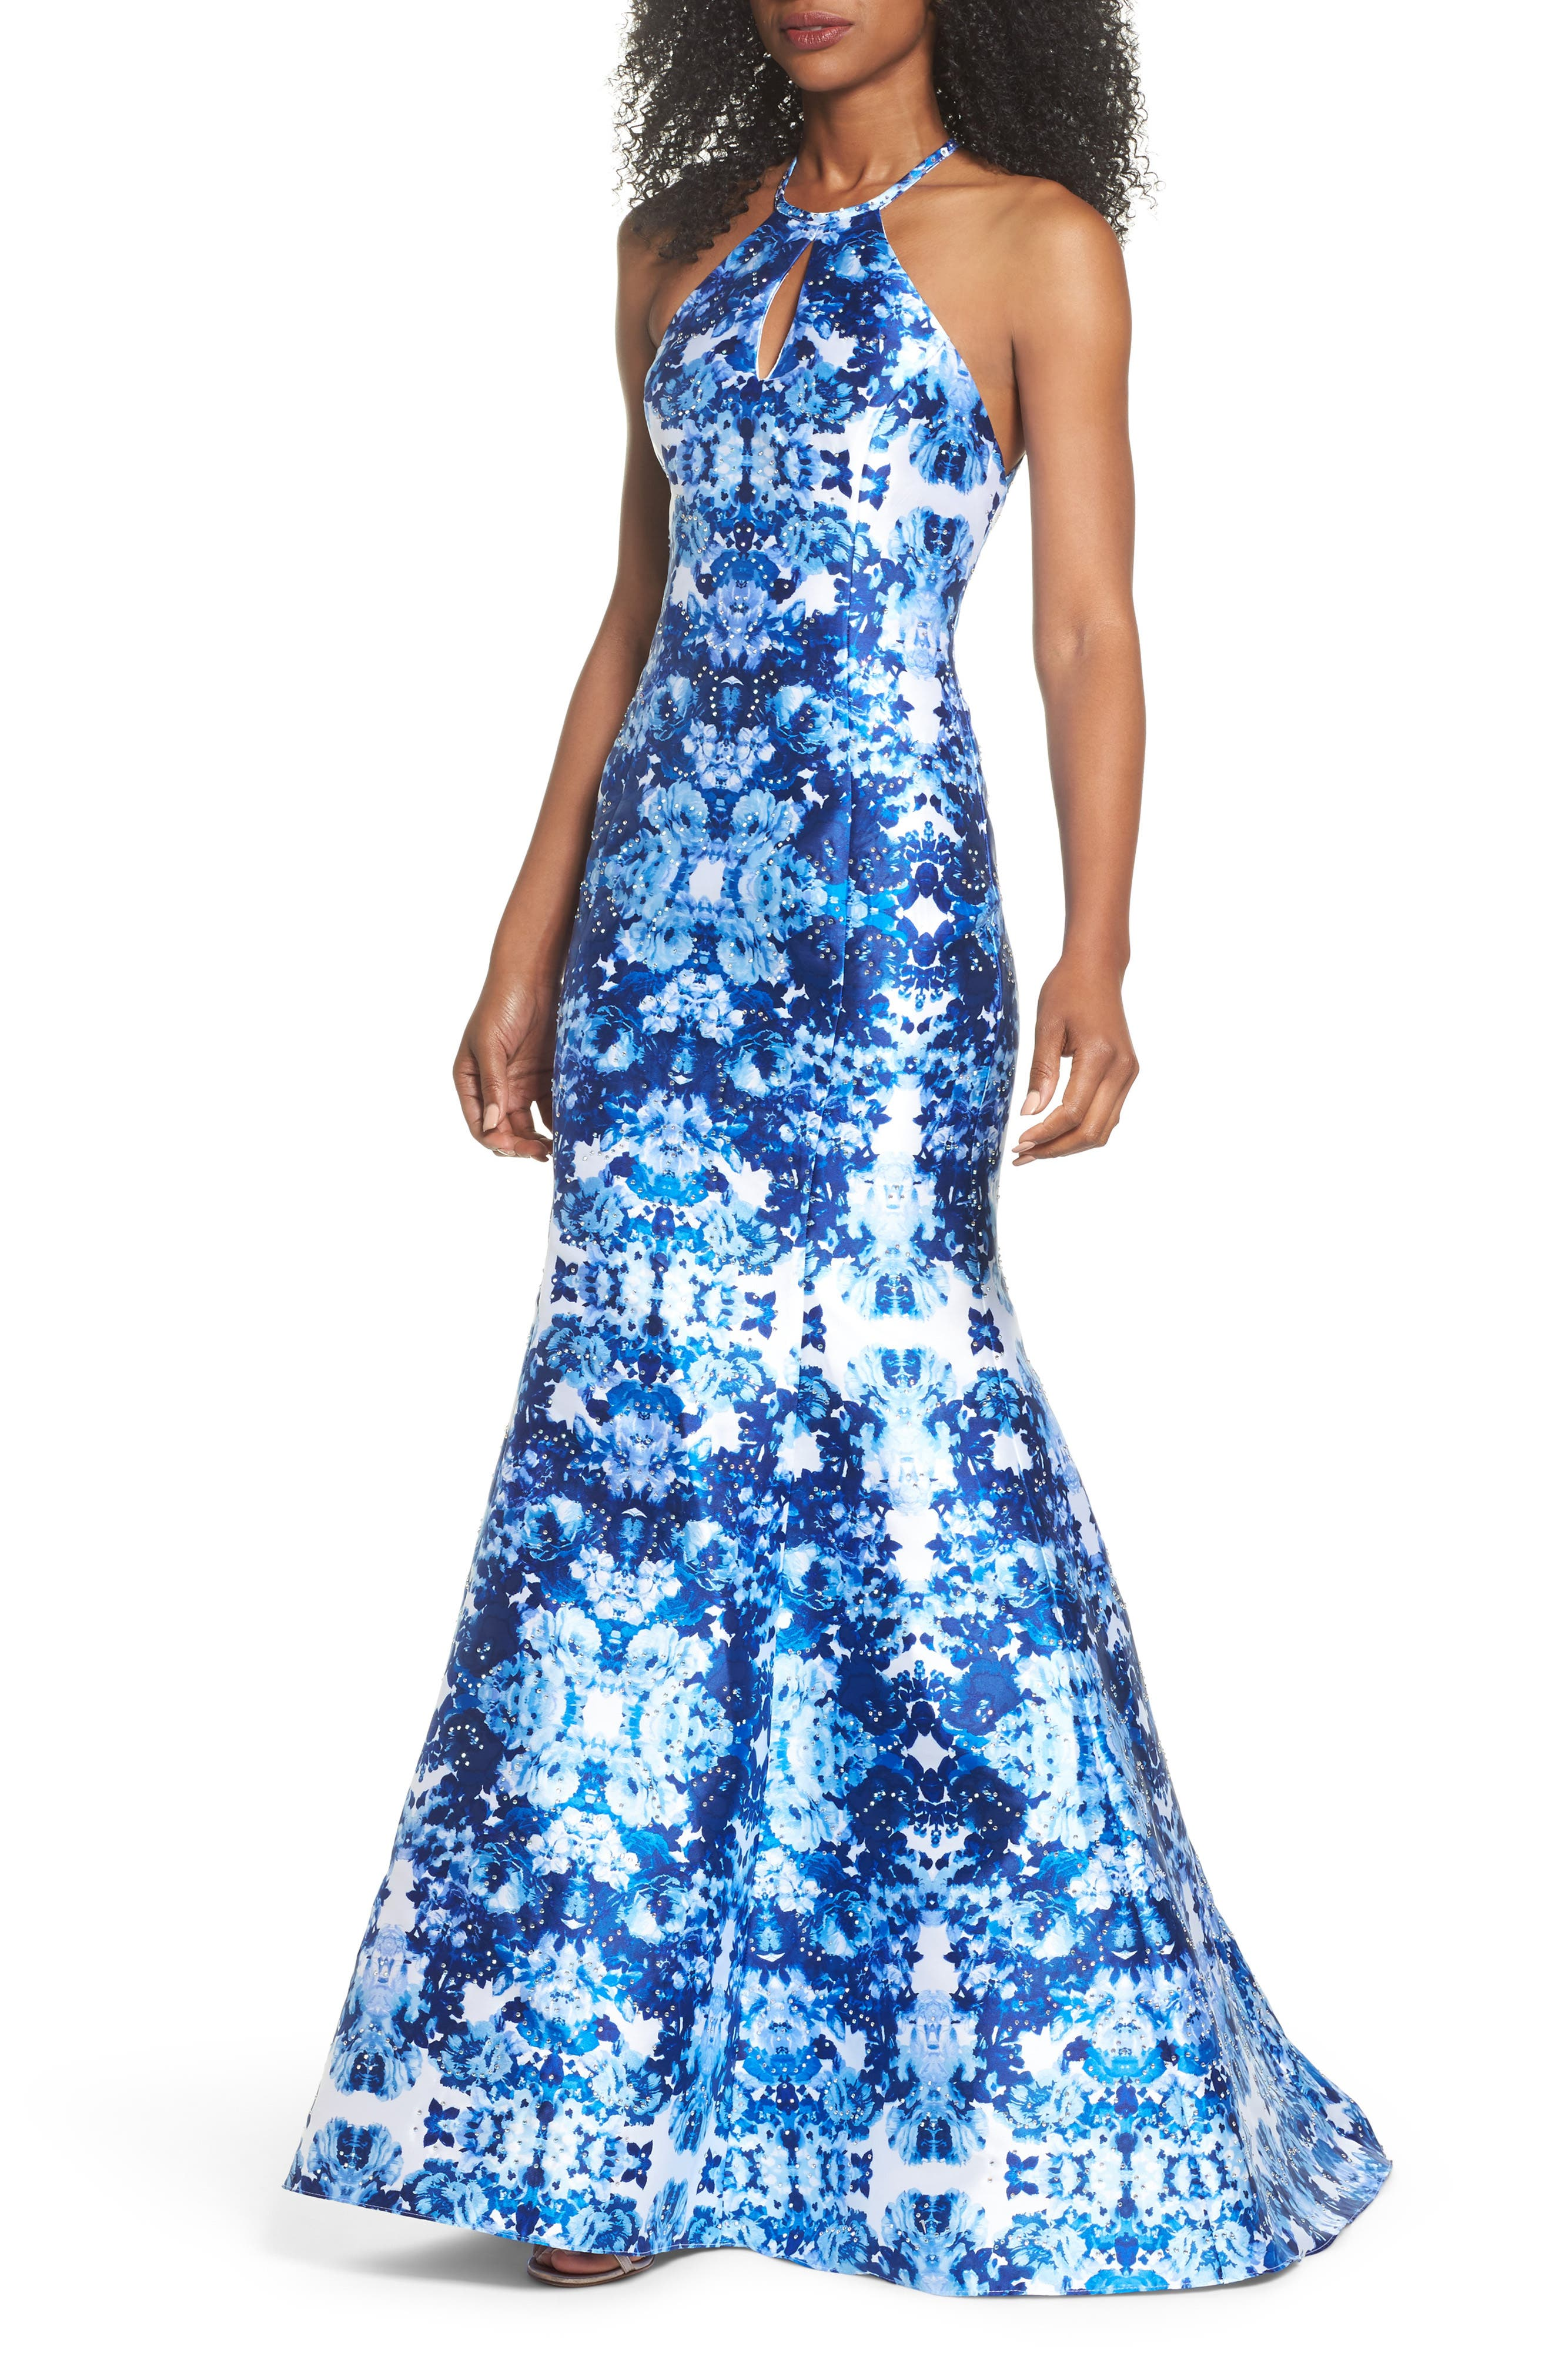 Mirror Pattern Halter Mermaid Gown,                             Main thumbnail 1, color,                             Blue/ Multi